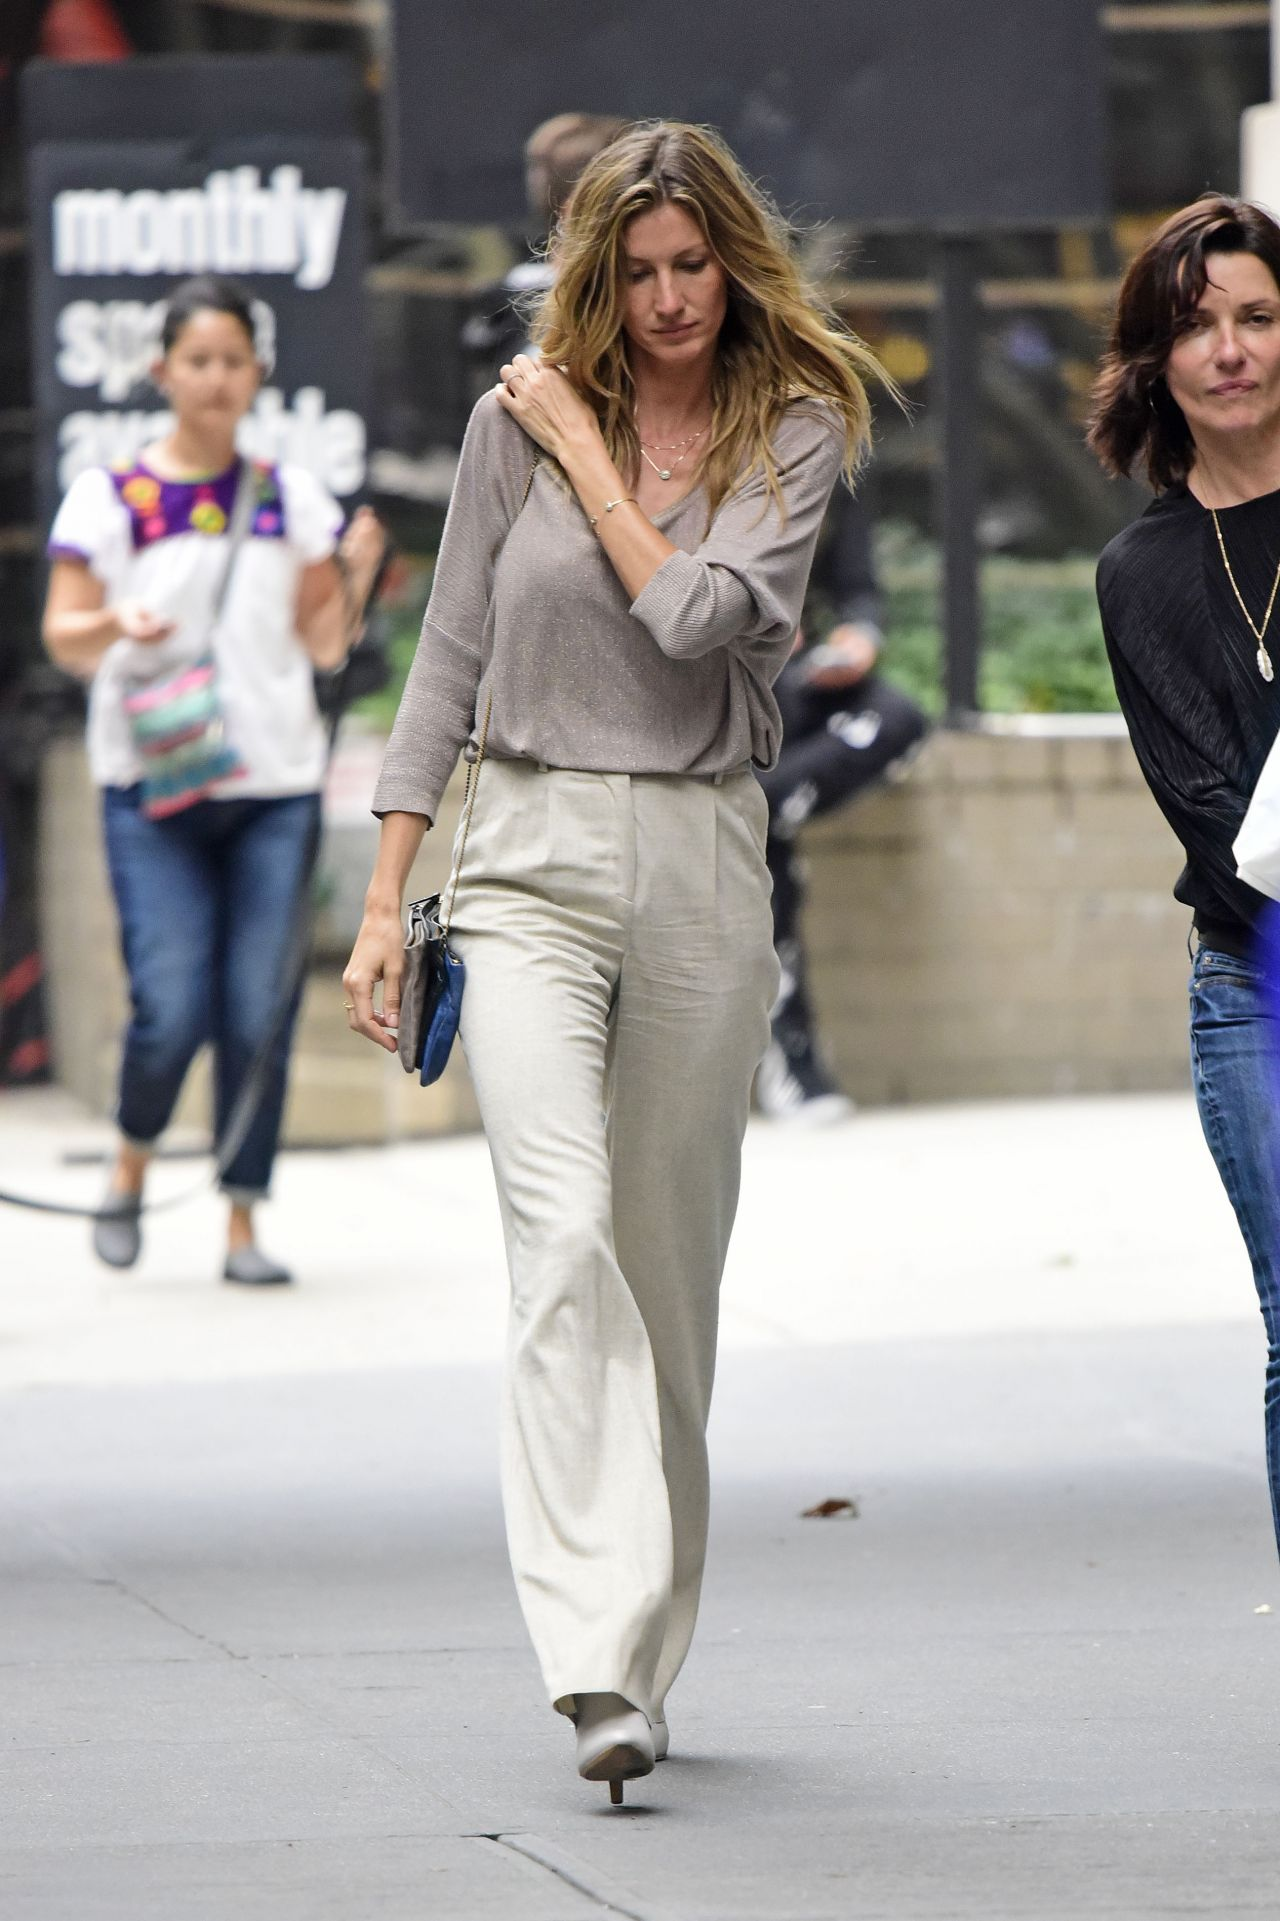 gisele bundchen casual style out in nyc october 2015